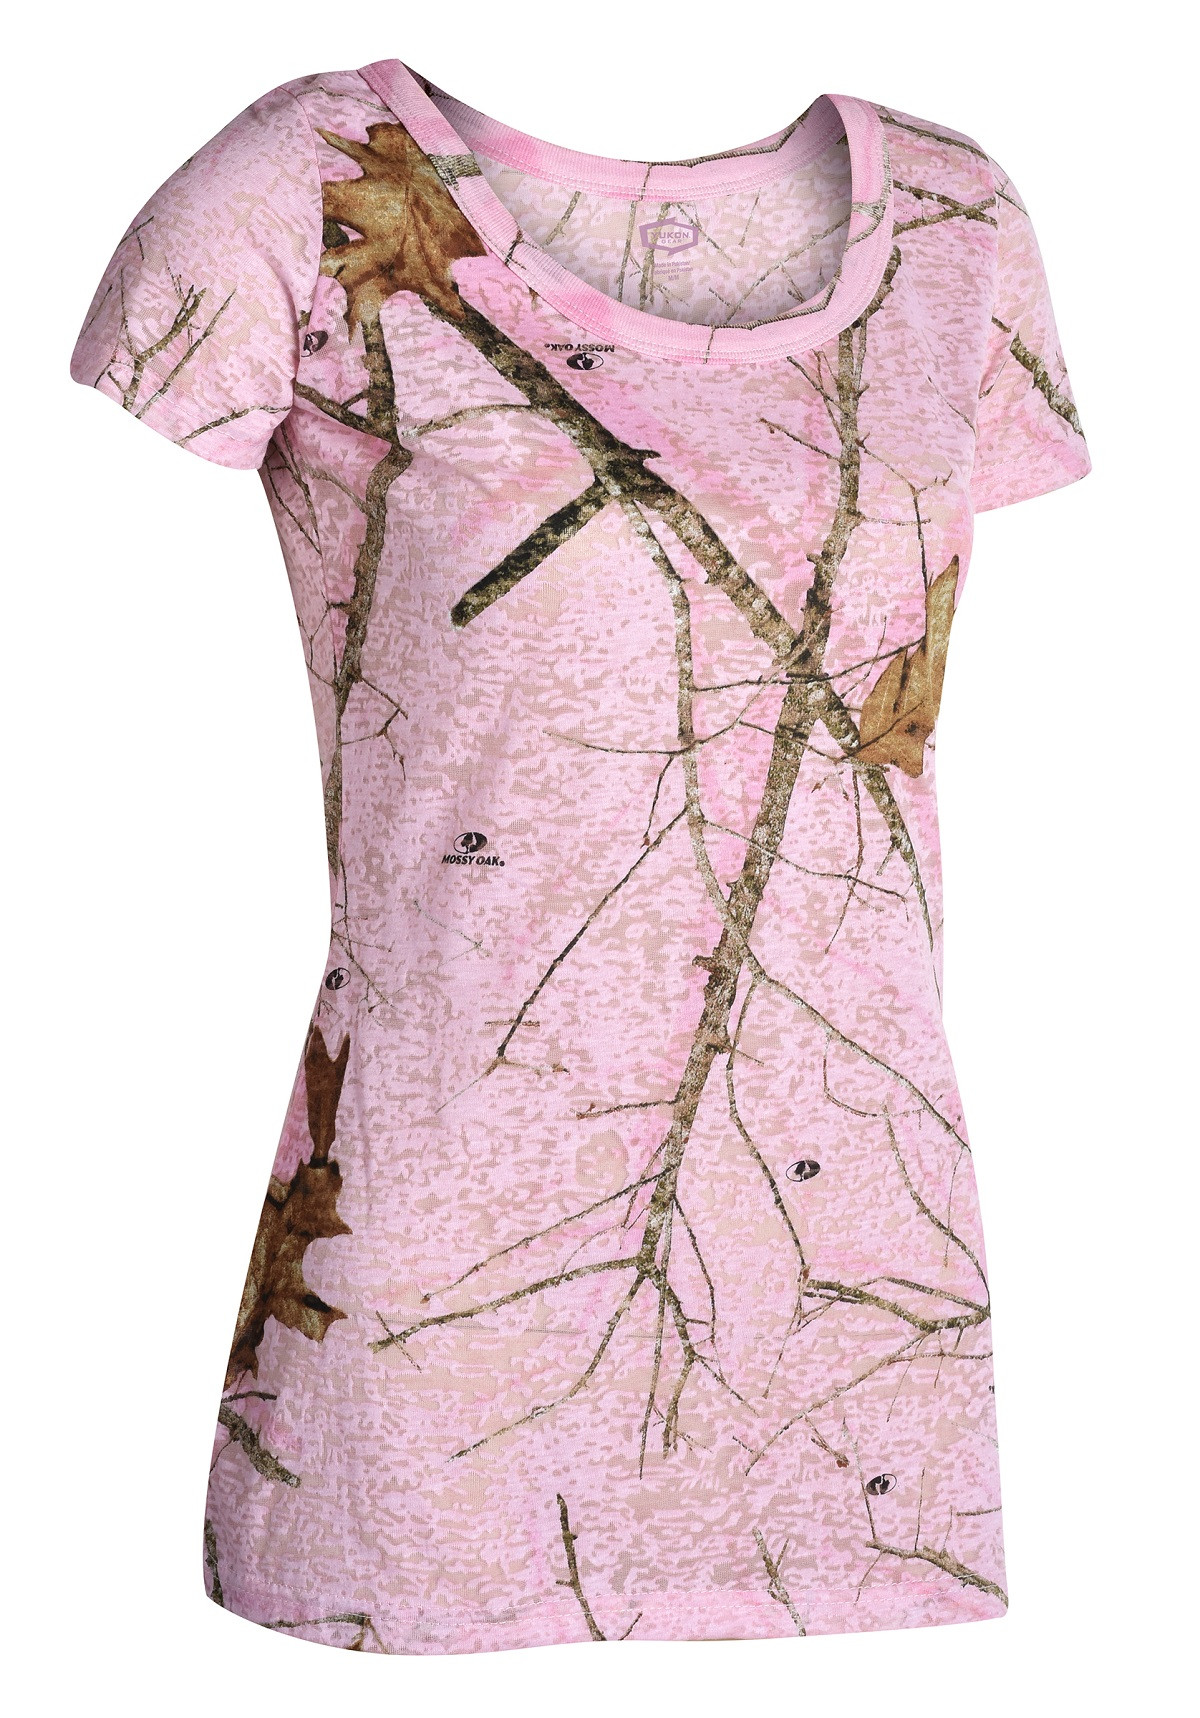 achat vente tee shirt femme mossy oak pink pas cher 1742. Black Bedroom Furniture Sets. Home Design Ideas